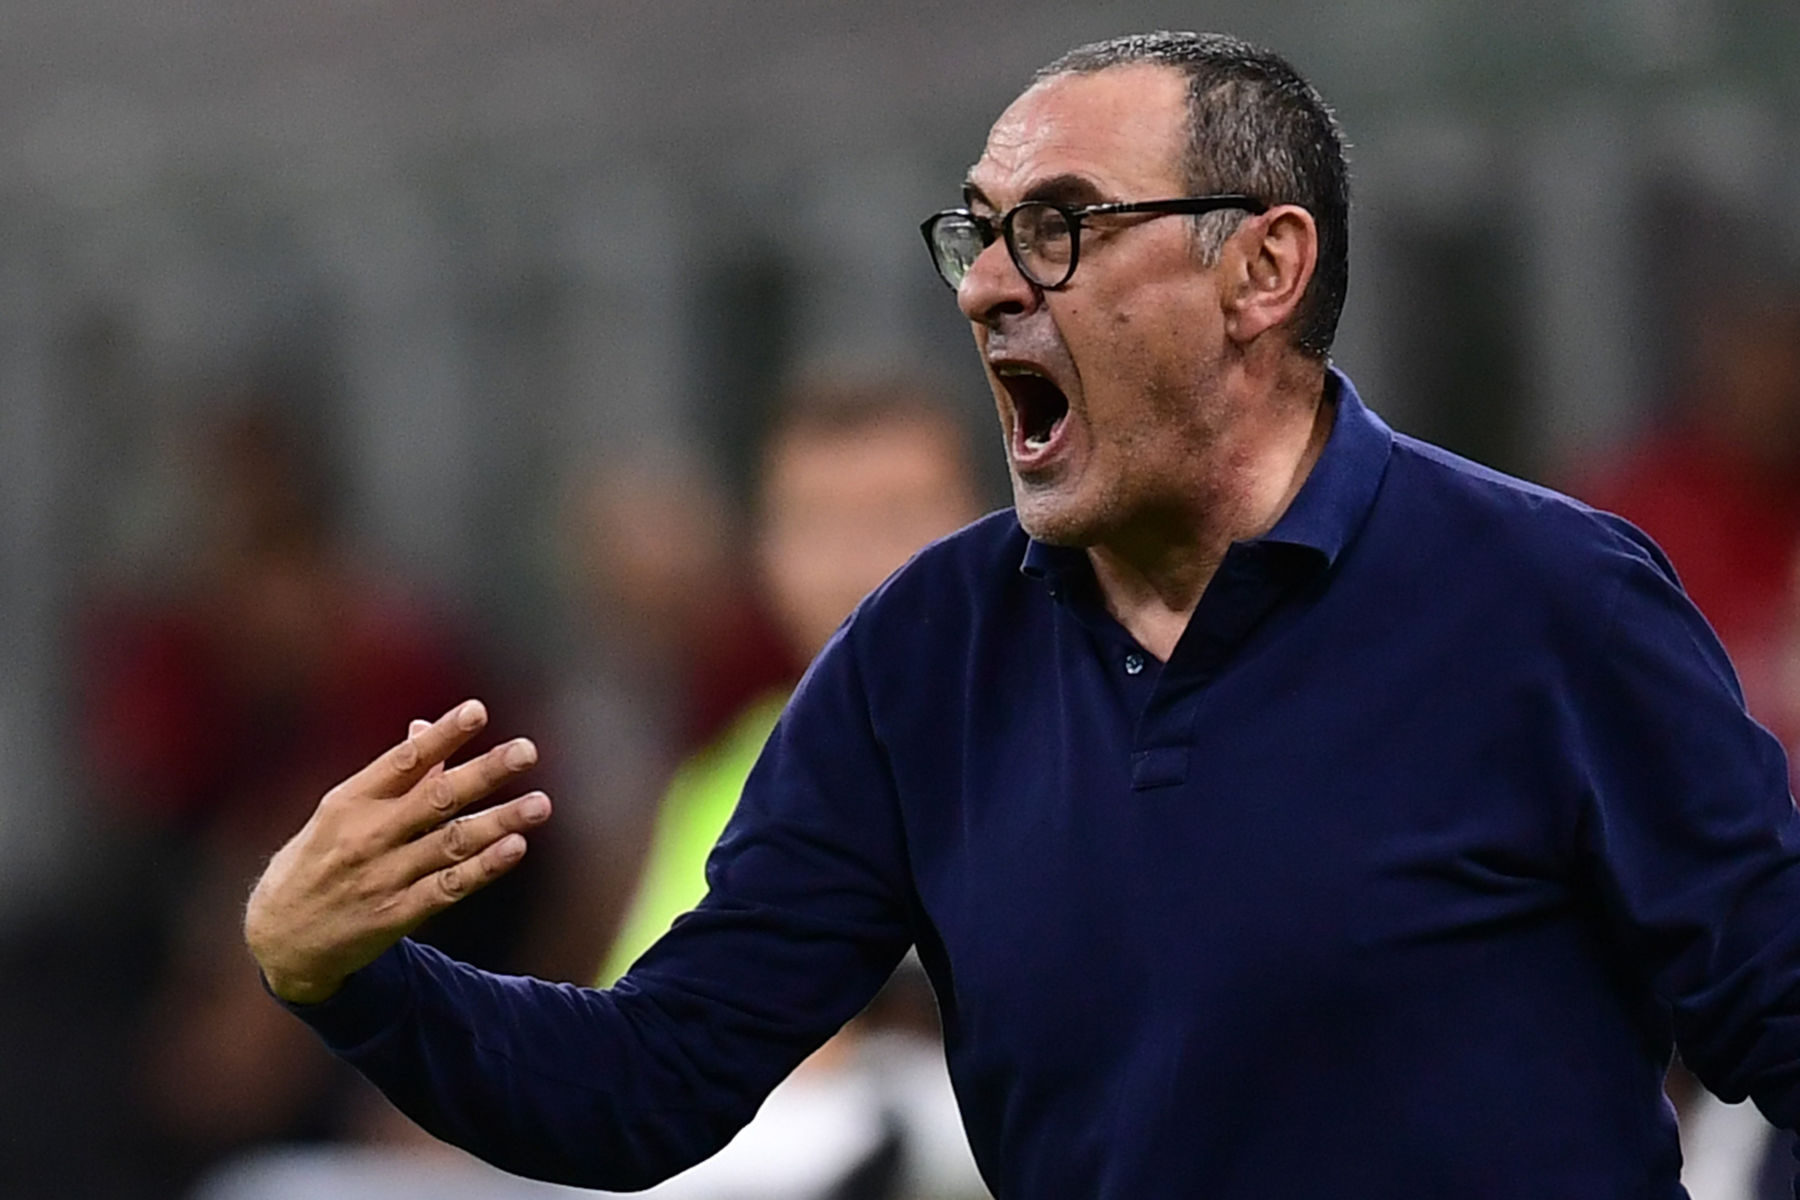 It S Like Going To The Dentist Juventus Manager Explains What It S Like To Play Against Atalanta Psg Talk